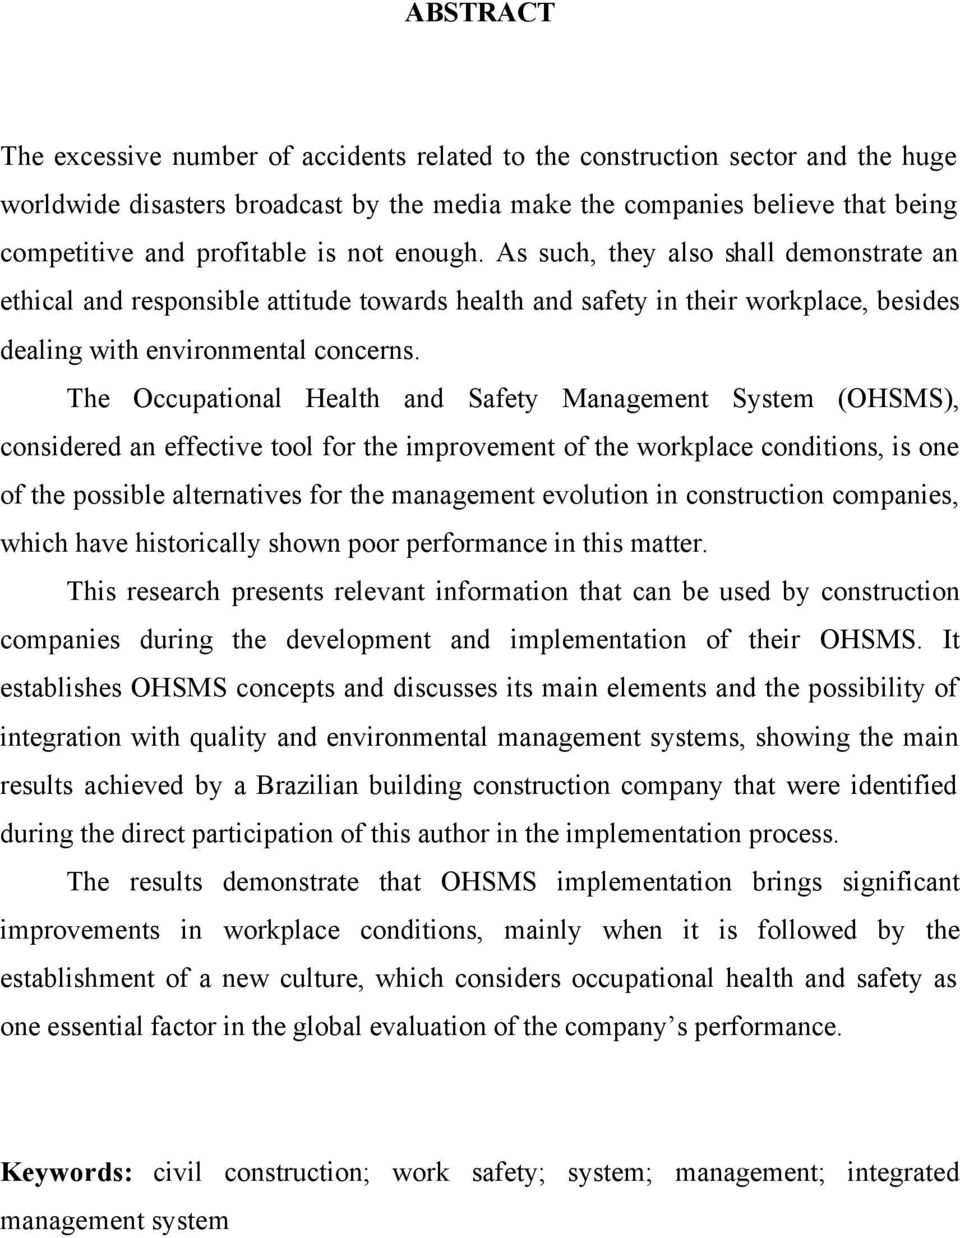 The Occupational Health and Safety Management System (OHSMS), considered an effective tool for the improvement of the workplace conditions, is one of the possible alternatives for the management